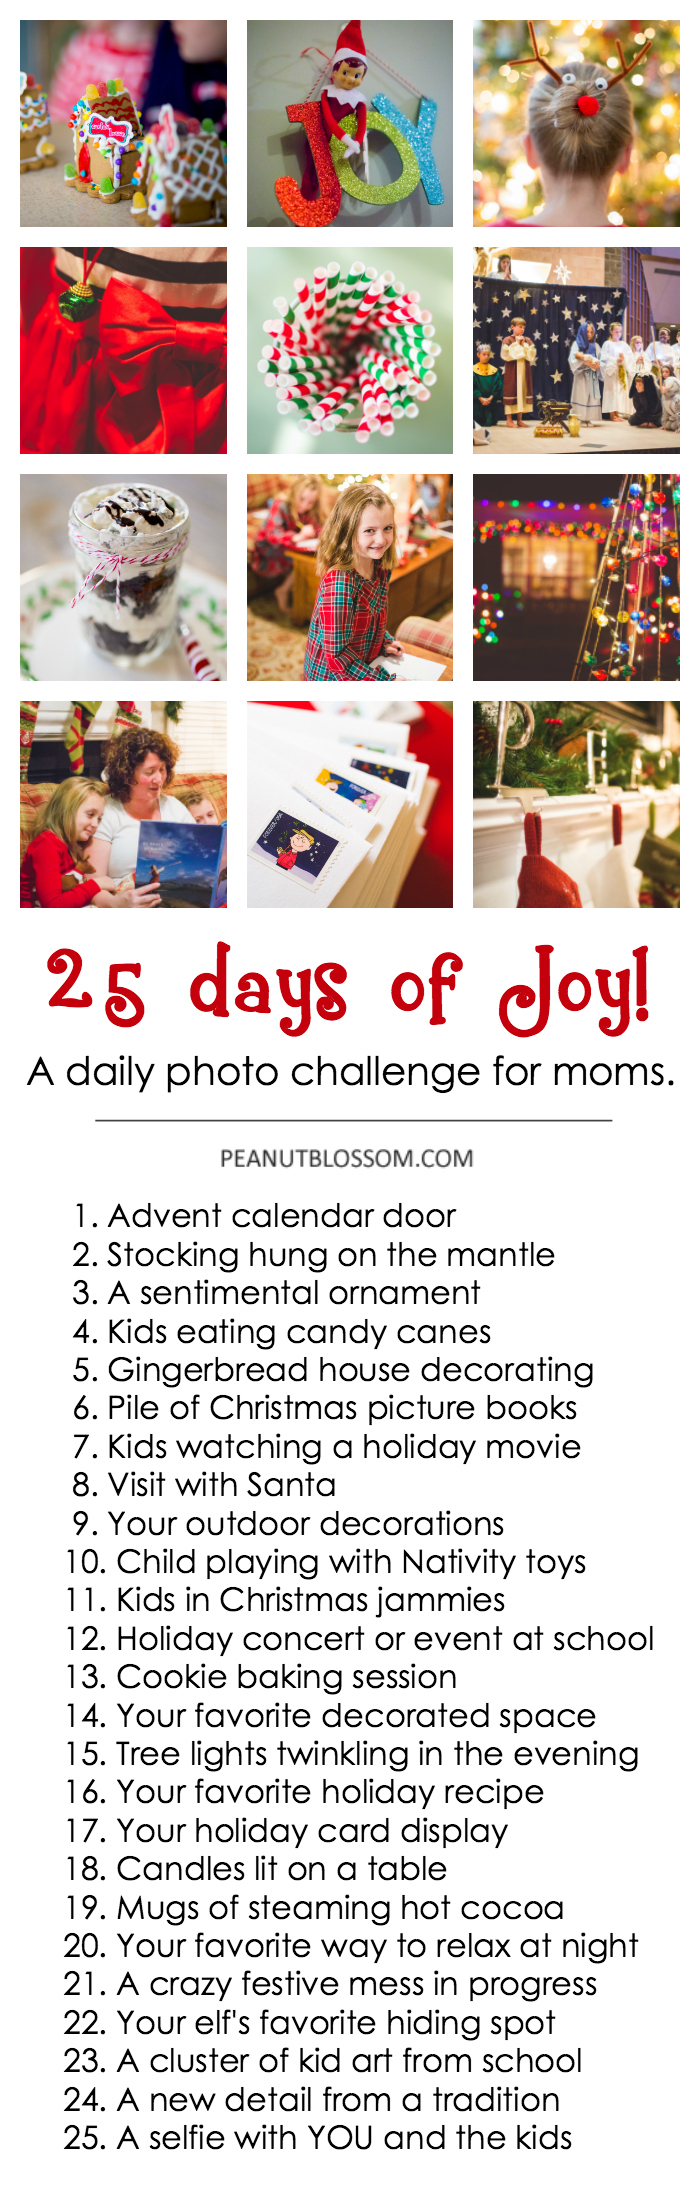 25 Days of Joy: a photography project for moms